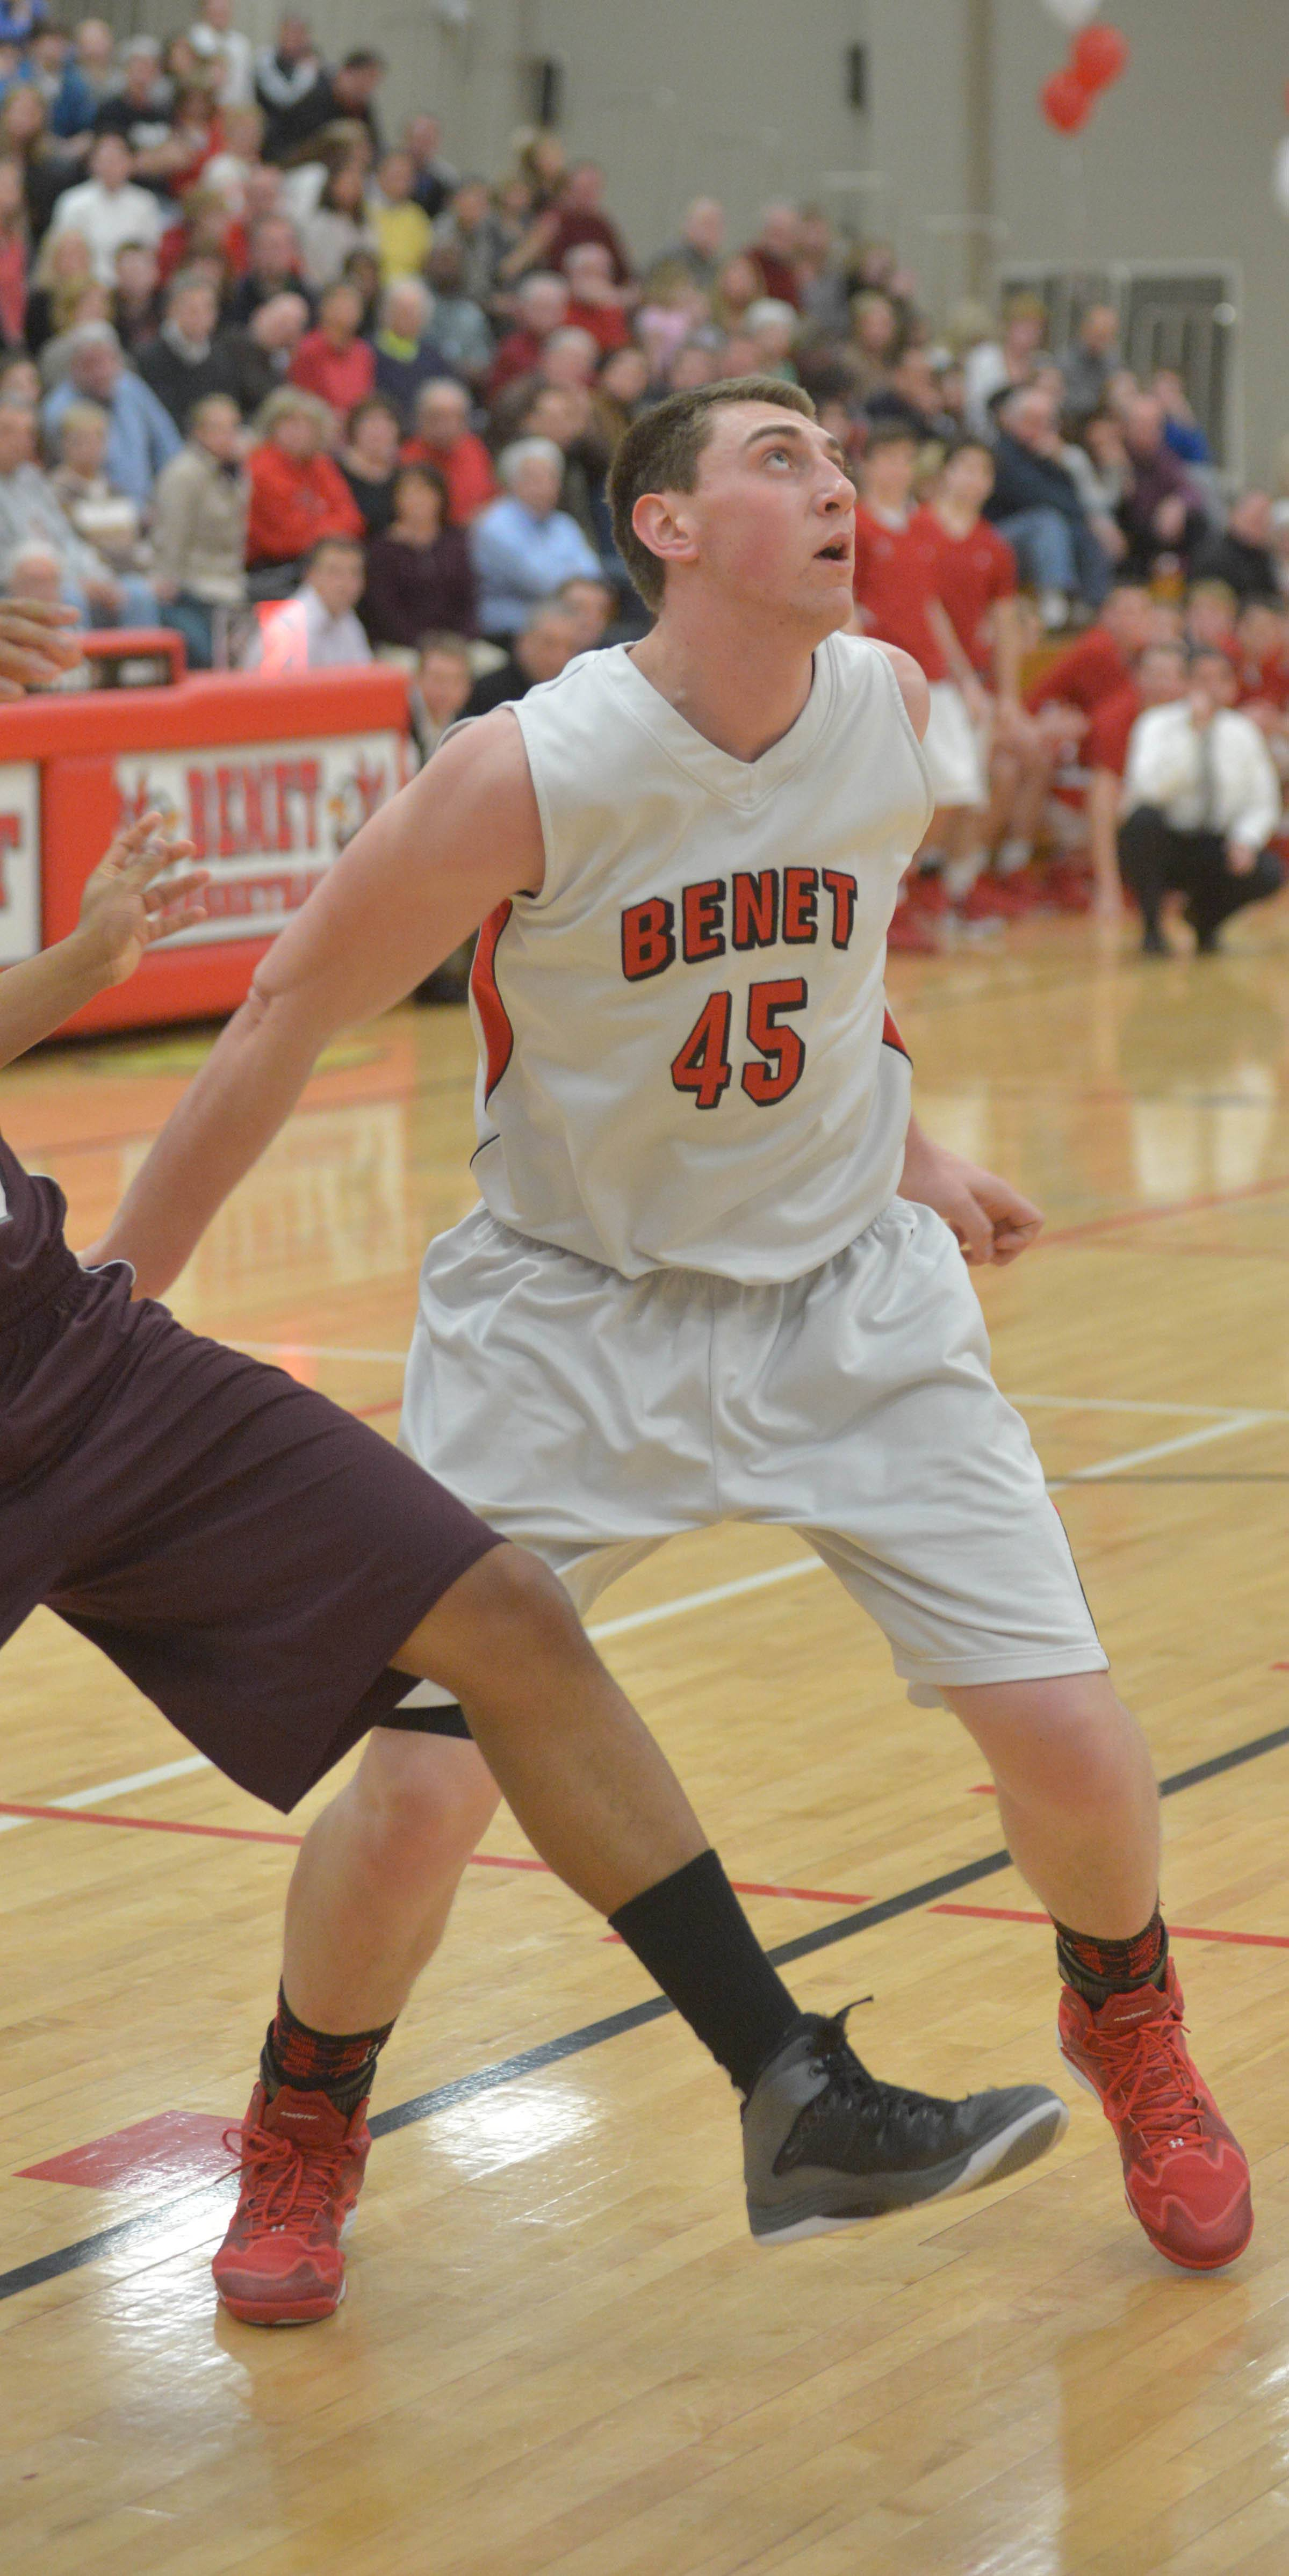 Sean O'Mara of Benet looks for the ball.